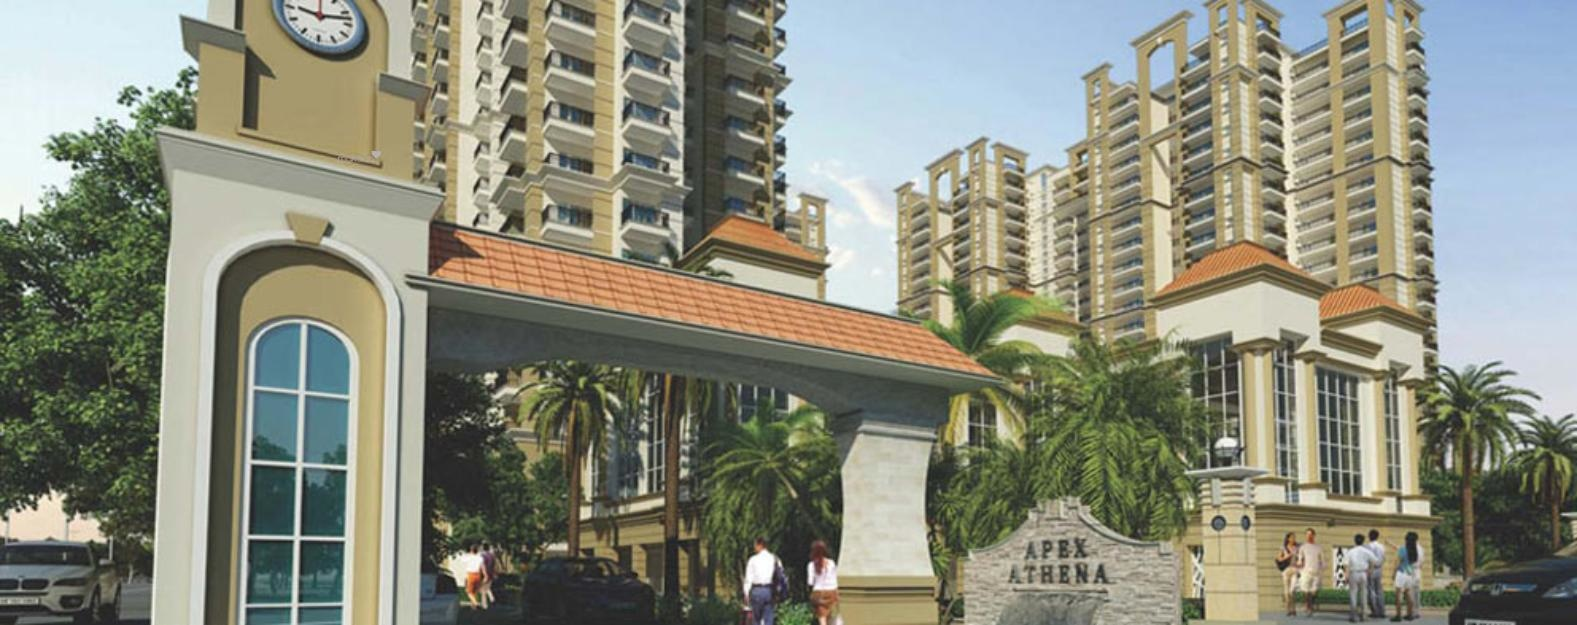 2099 sq ft 3BHK 3BHK+4T (2,099 sq ft) + Servant Room Property By Ajmani Estates In Athena, Sector 75